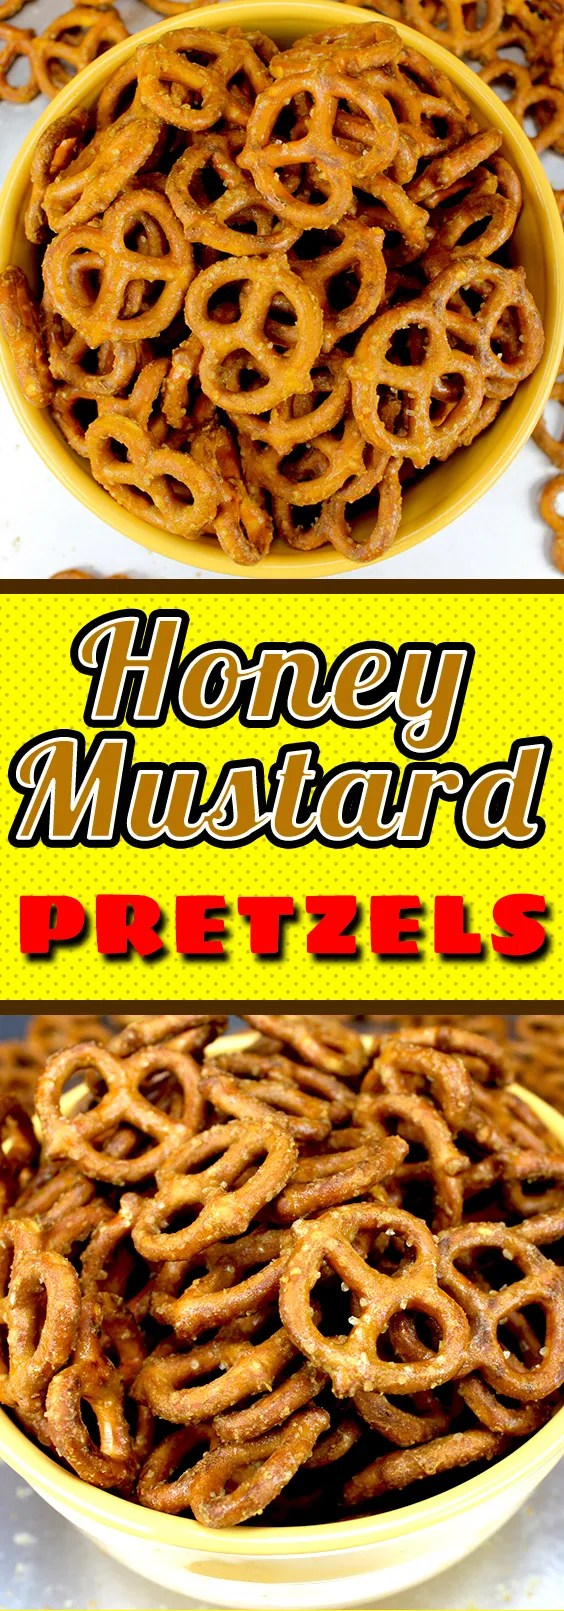 Honey Mustard Pretzels - A prefect salty, sweet and crunchy snack. You have been warned these are ADDICTIVE!